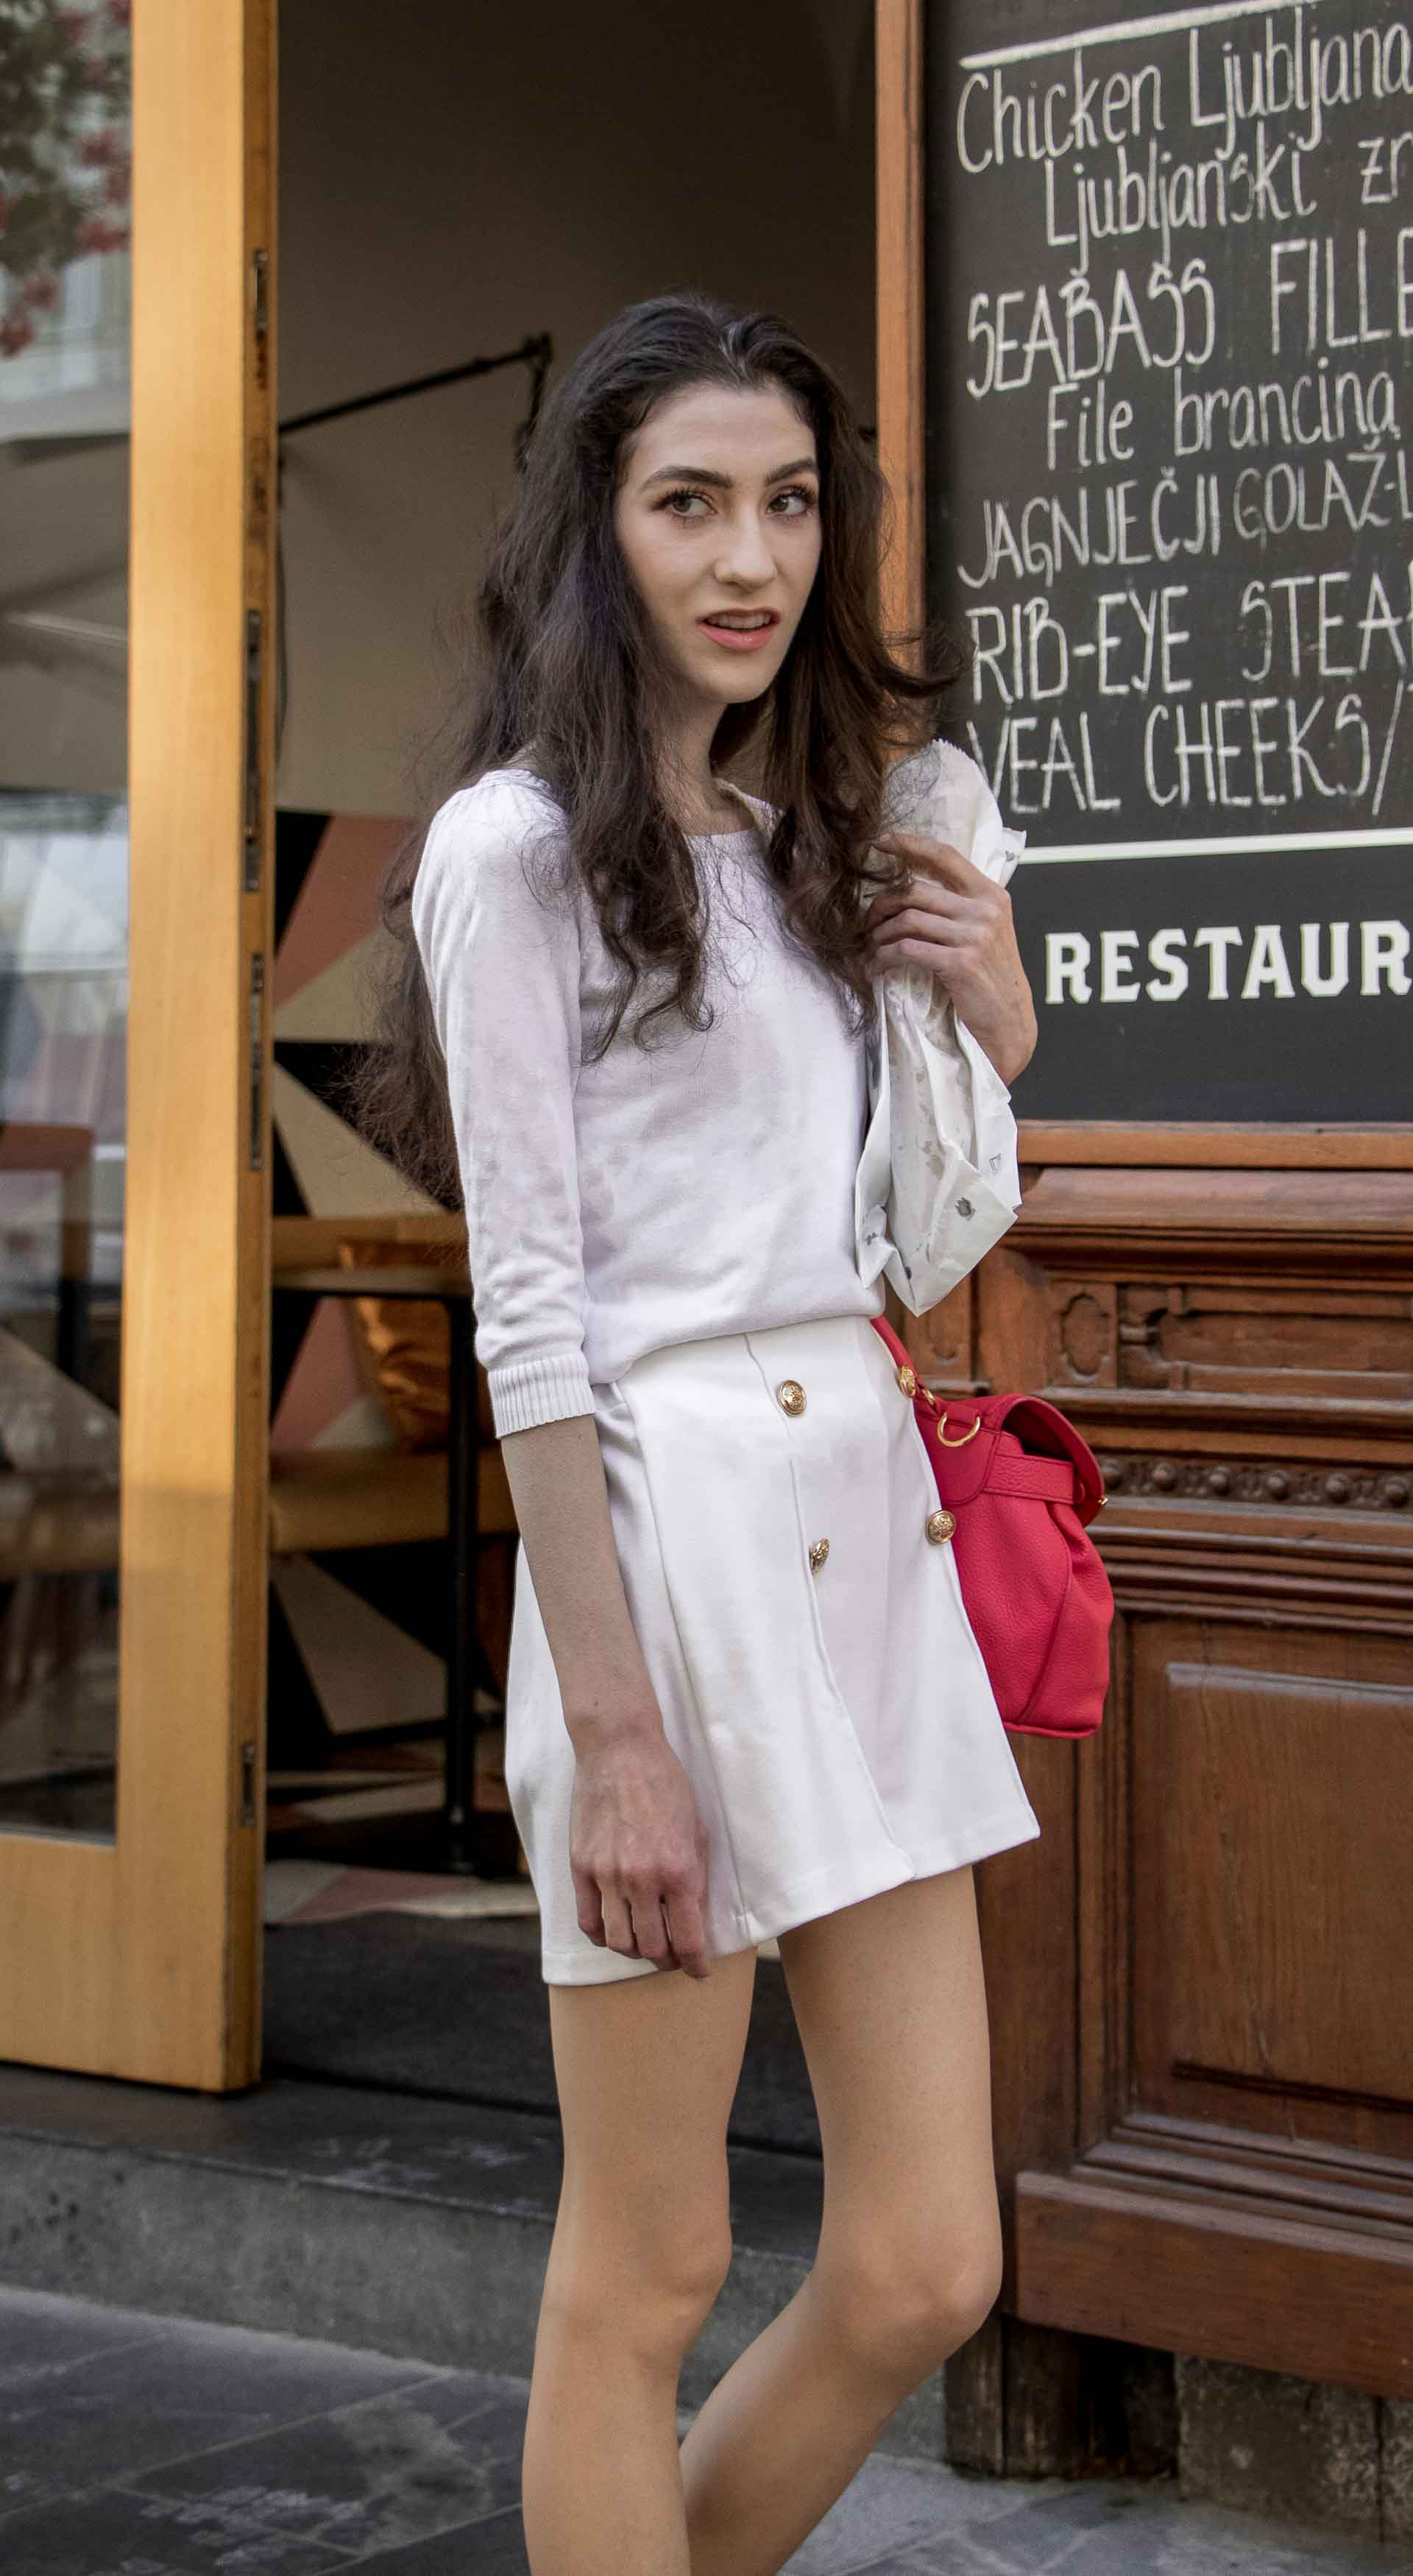 Slovenska modna blogerka Veronika Lipar of Brunette from Wall wearing all in white outfit, a white sweater, white tailored shorts, black flat slipper mules, pink top handle bag, a paper bag during heat wave in Ljubljana